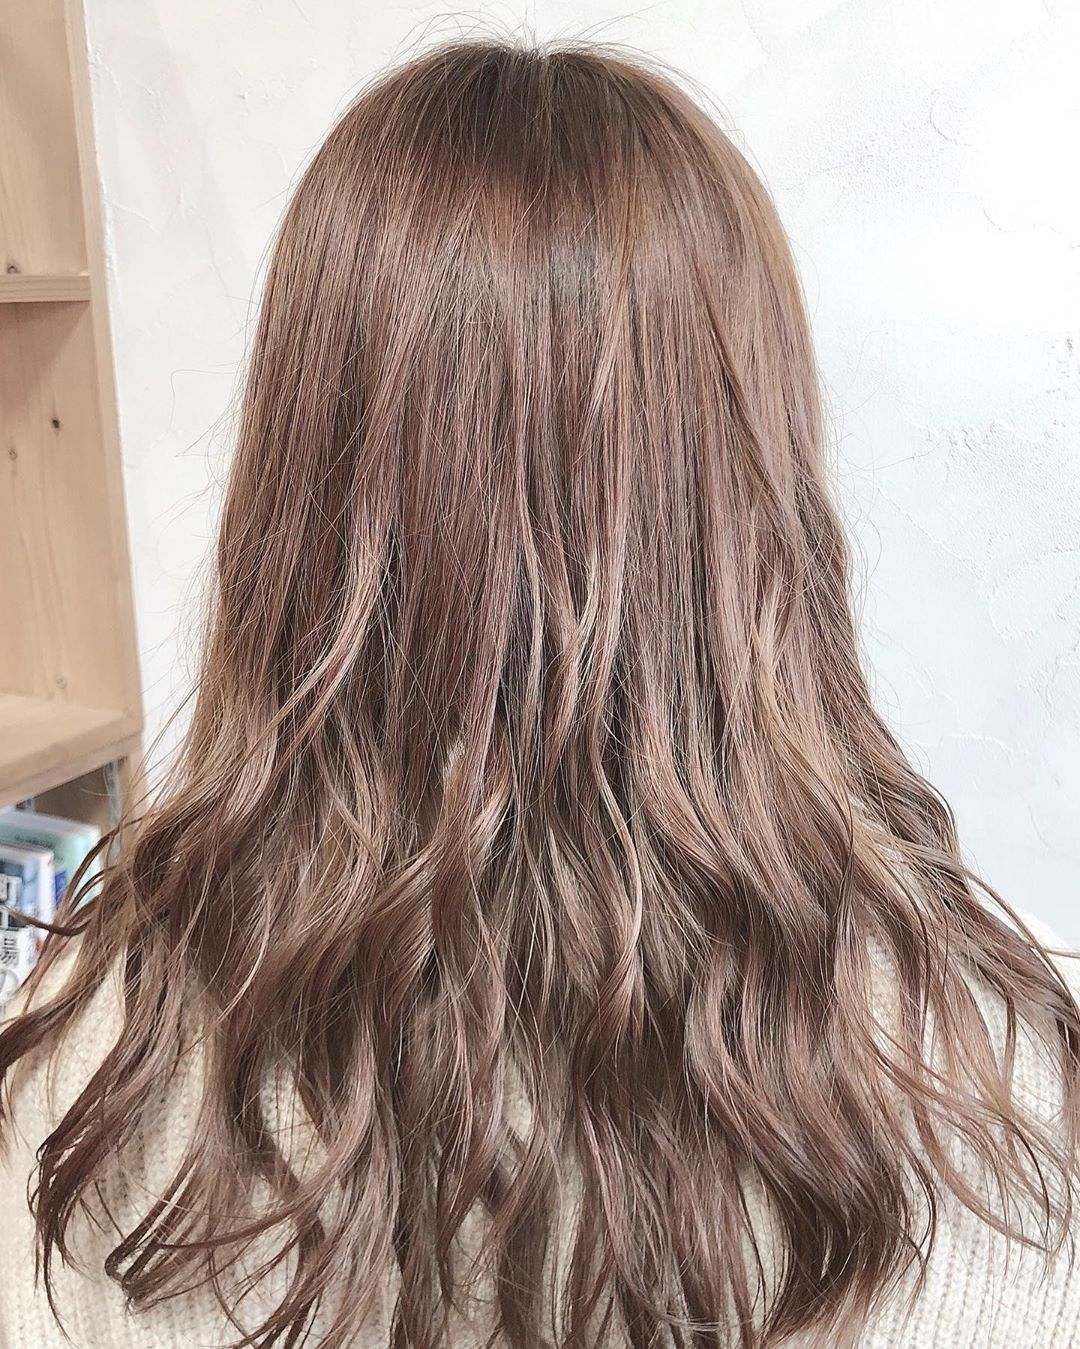 japanese hairstyles - long airy S-shaped waves